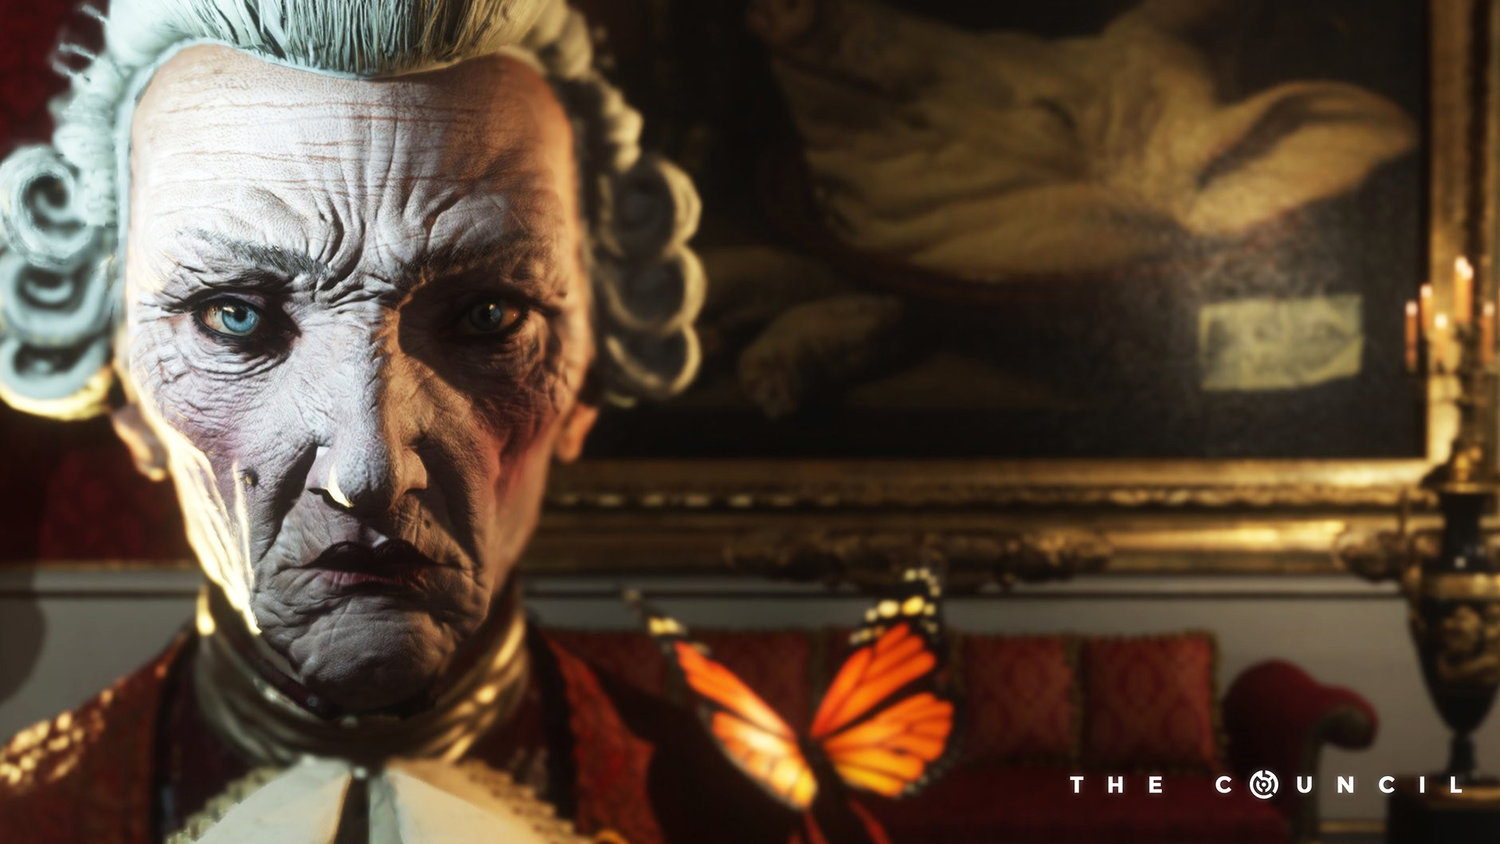 The Council – Complete Edition coming to consoles